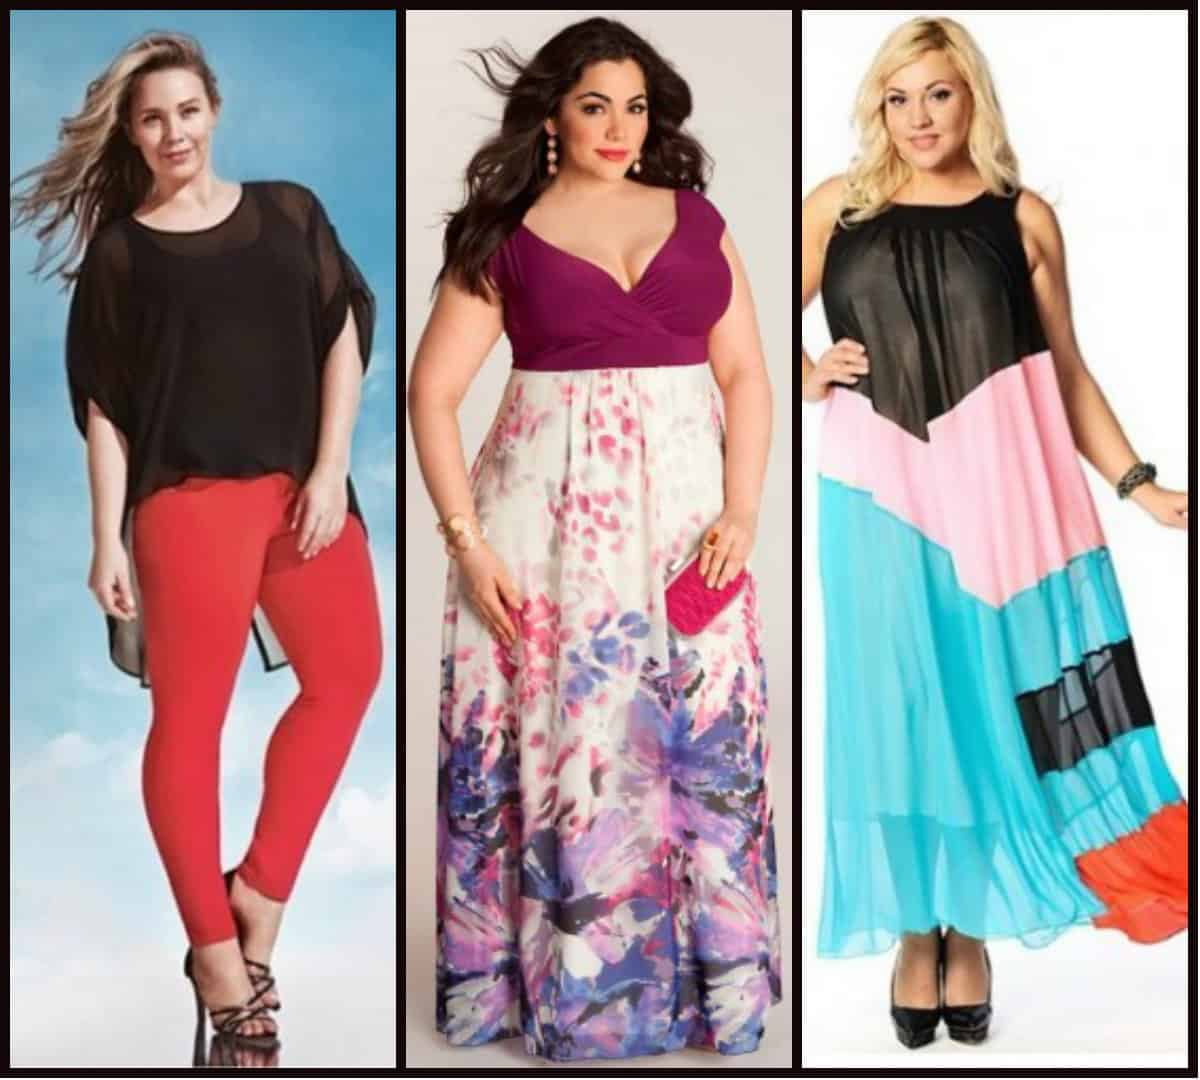 Women's Plus Size Clothing Trends Spring Summer 2016